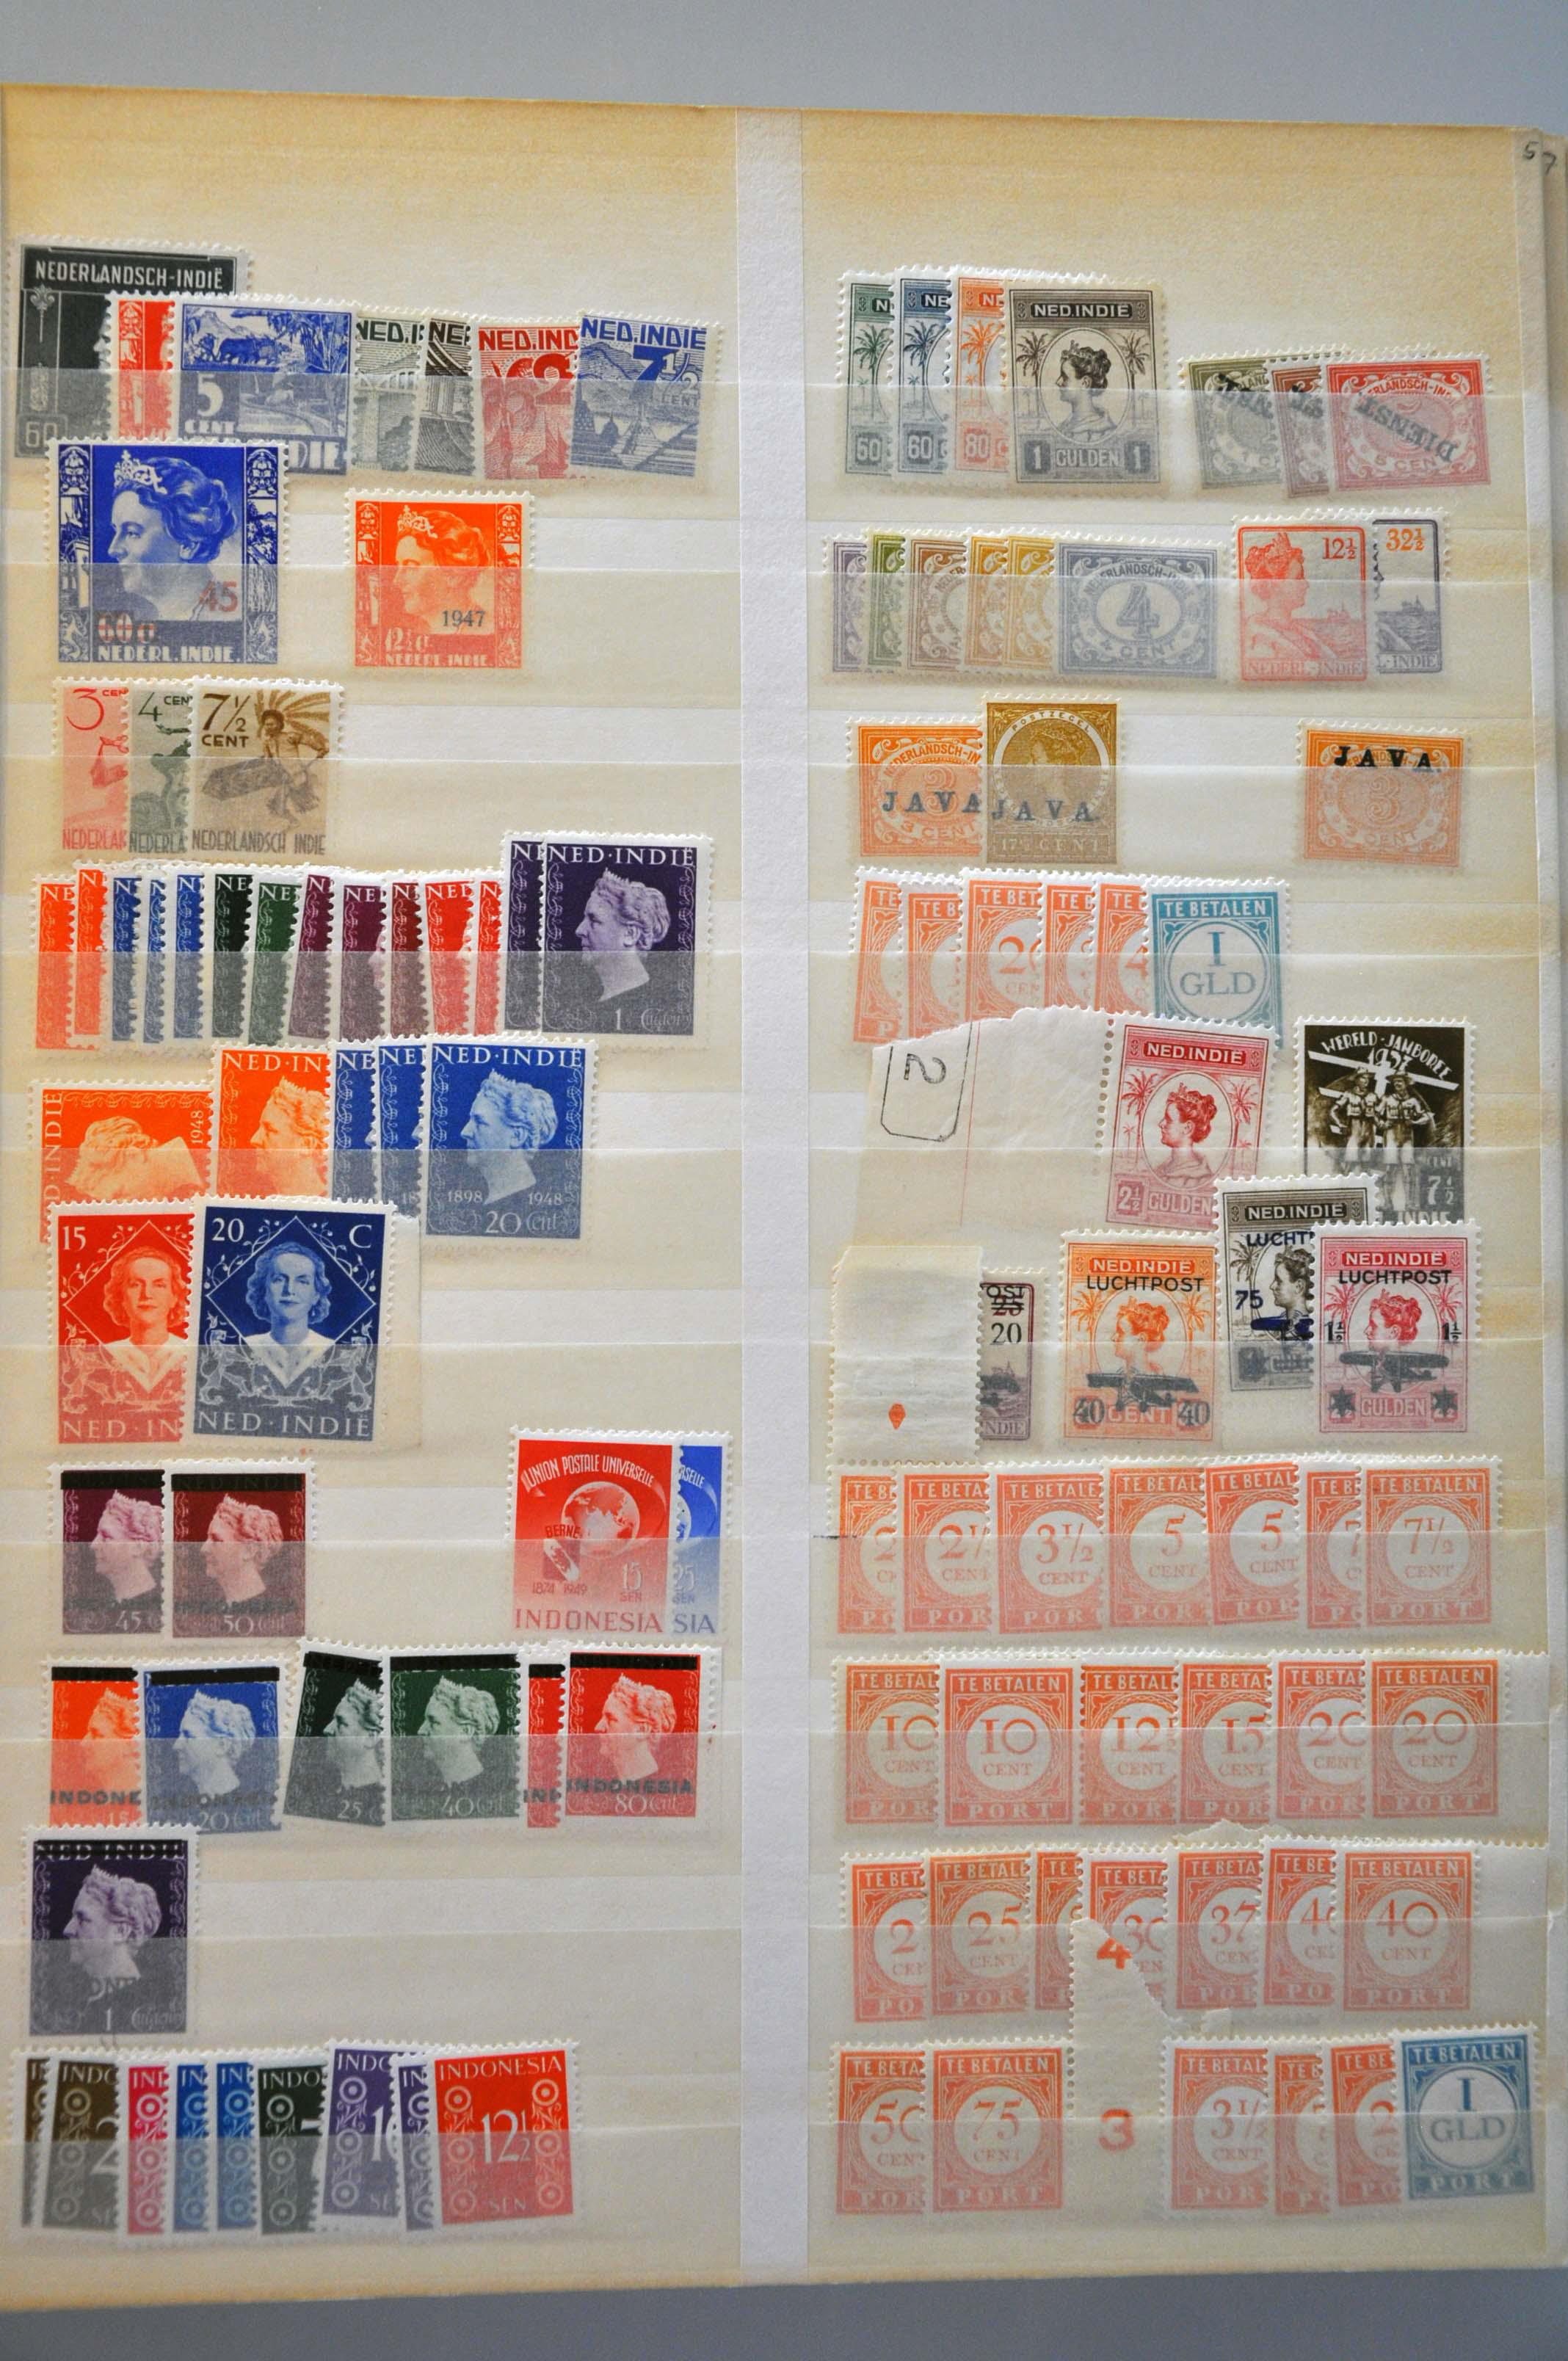 Lot 2359 - Netherlands and former colonies Netherlands and Former Territories -  Corinphila Veilingen Auction 245-246 Day 3 - Netherlands and former colonies - Single lots, Collections and lots, Boxes and literature